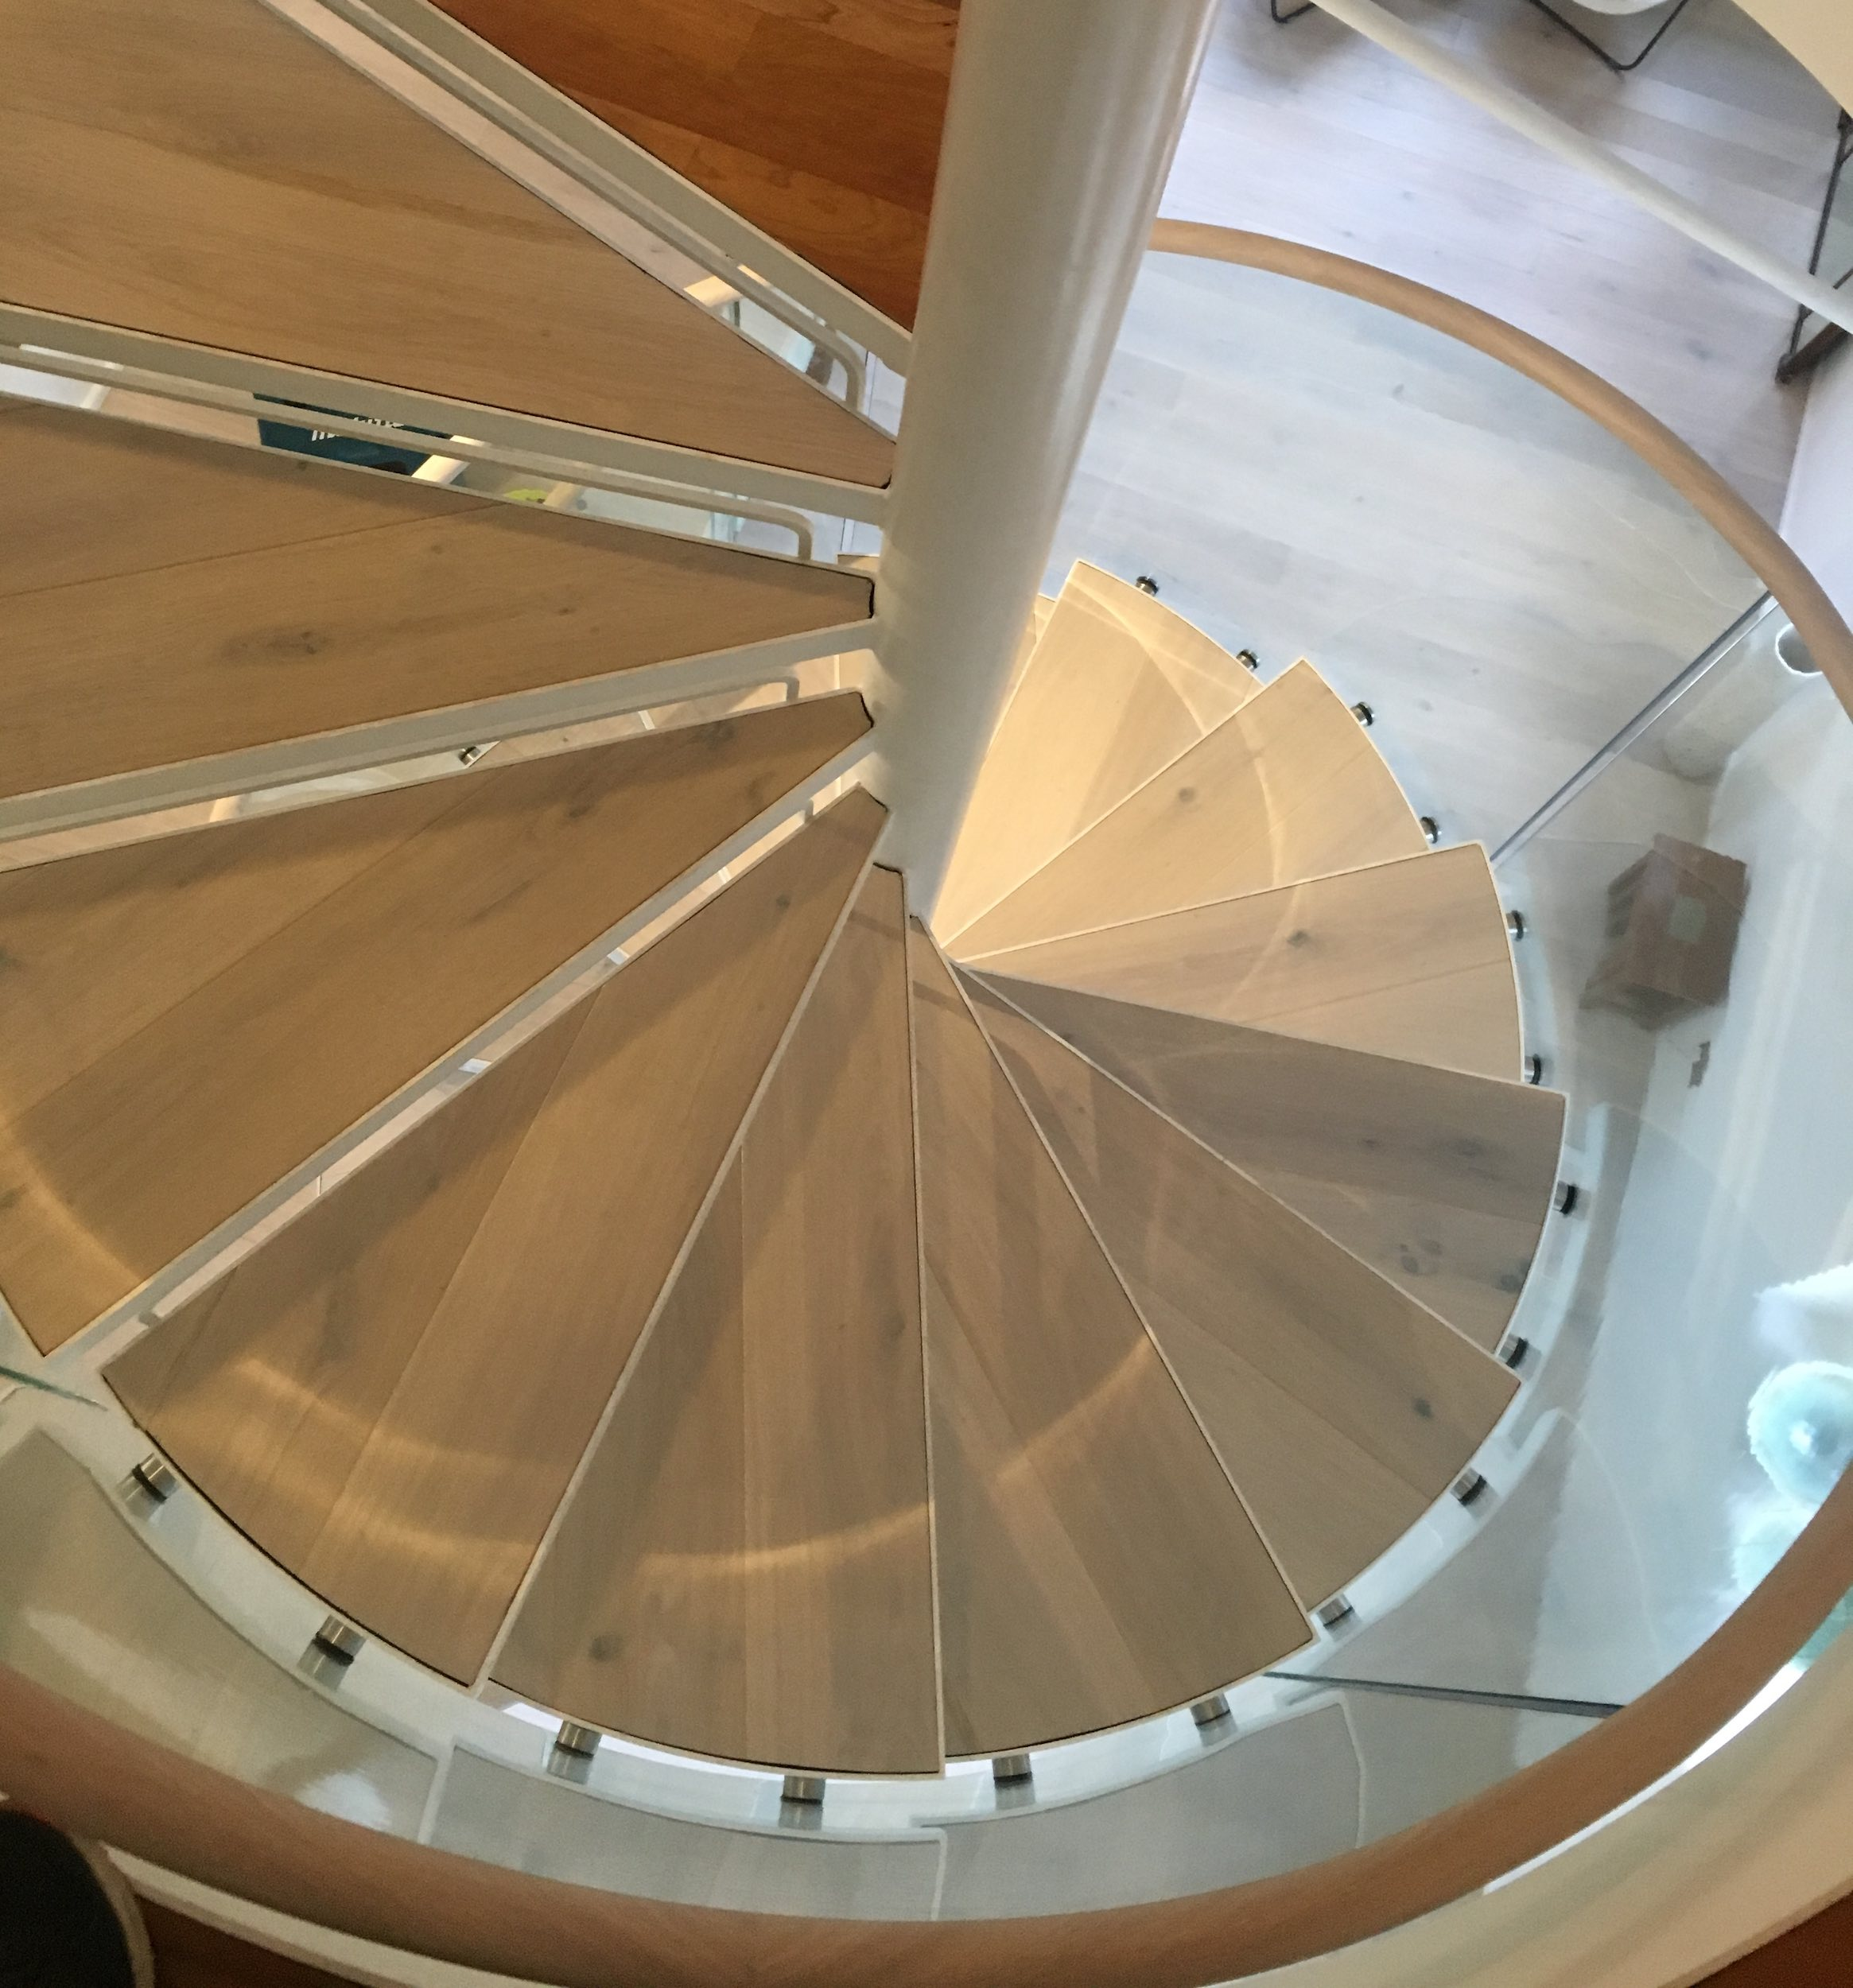 Spiral staircase with reclaimed wood treads and glass balustrade